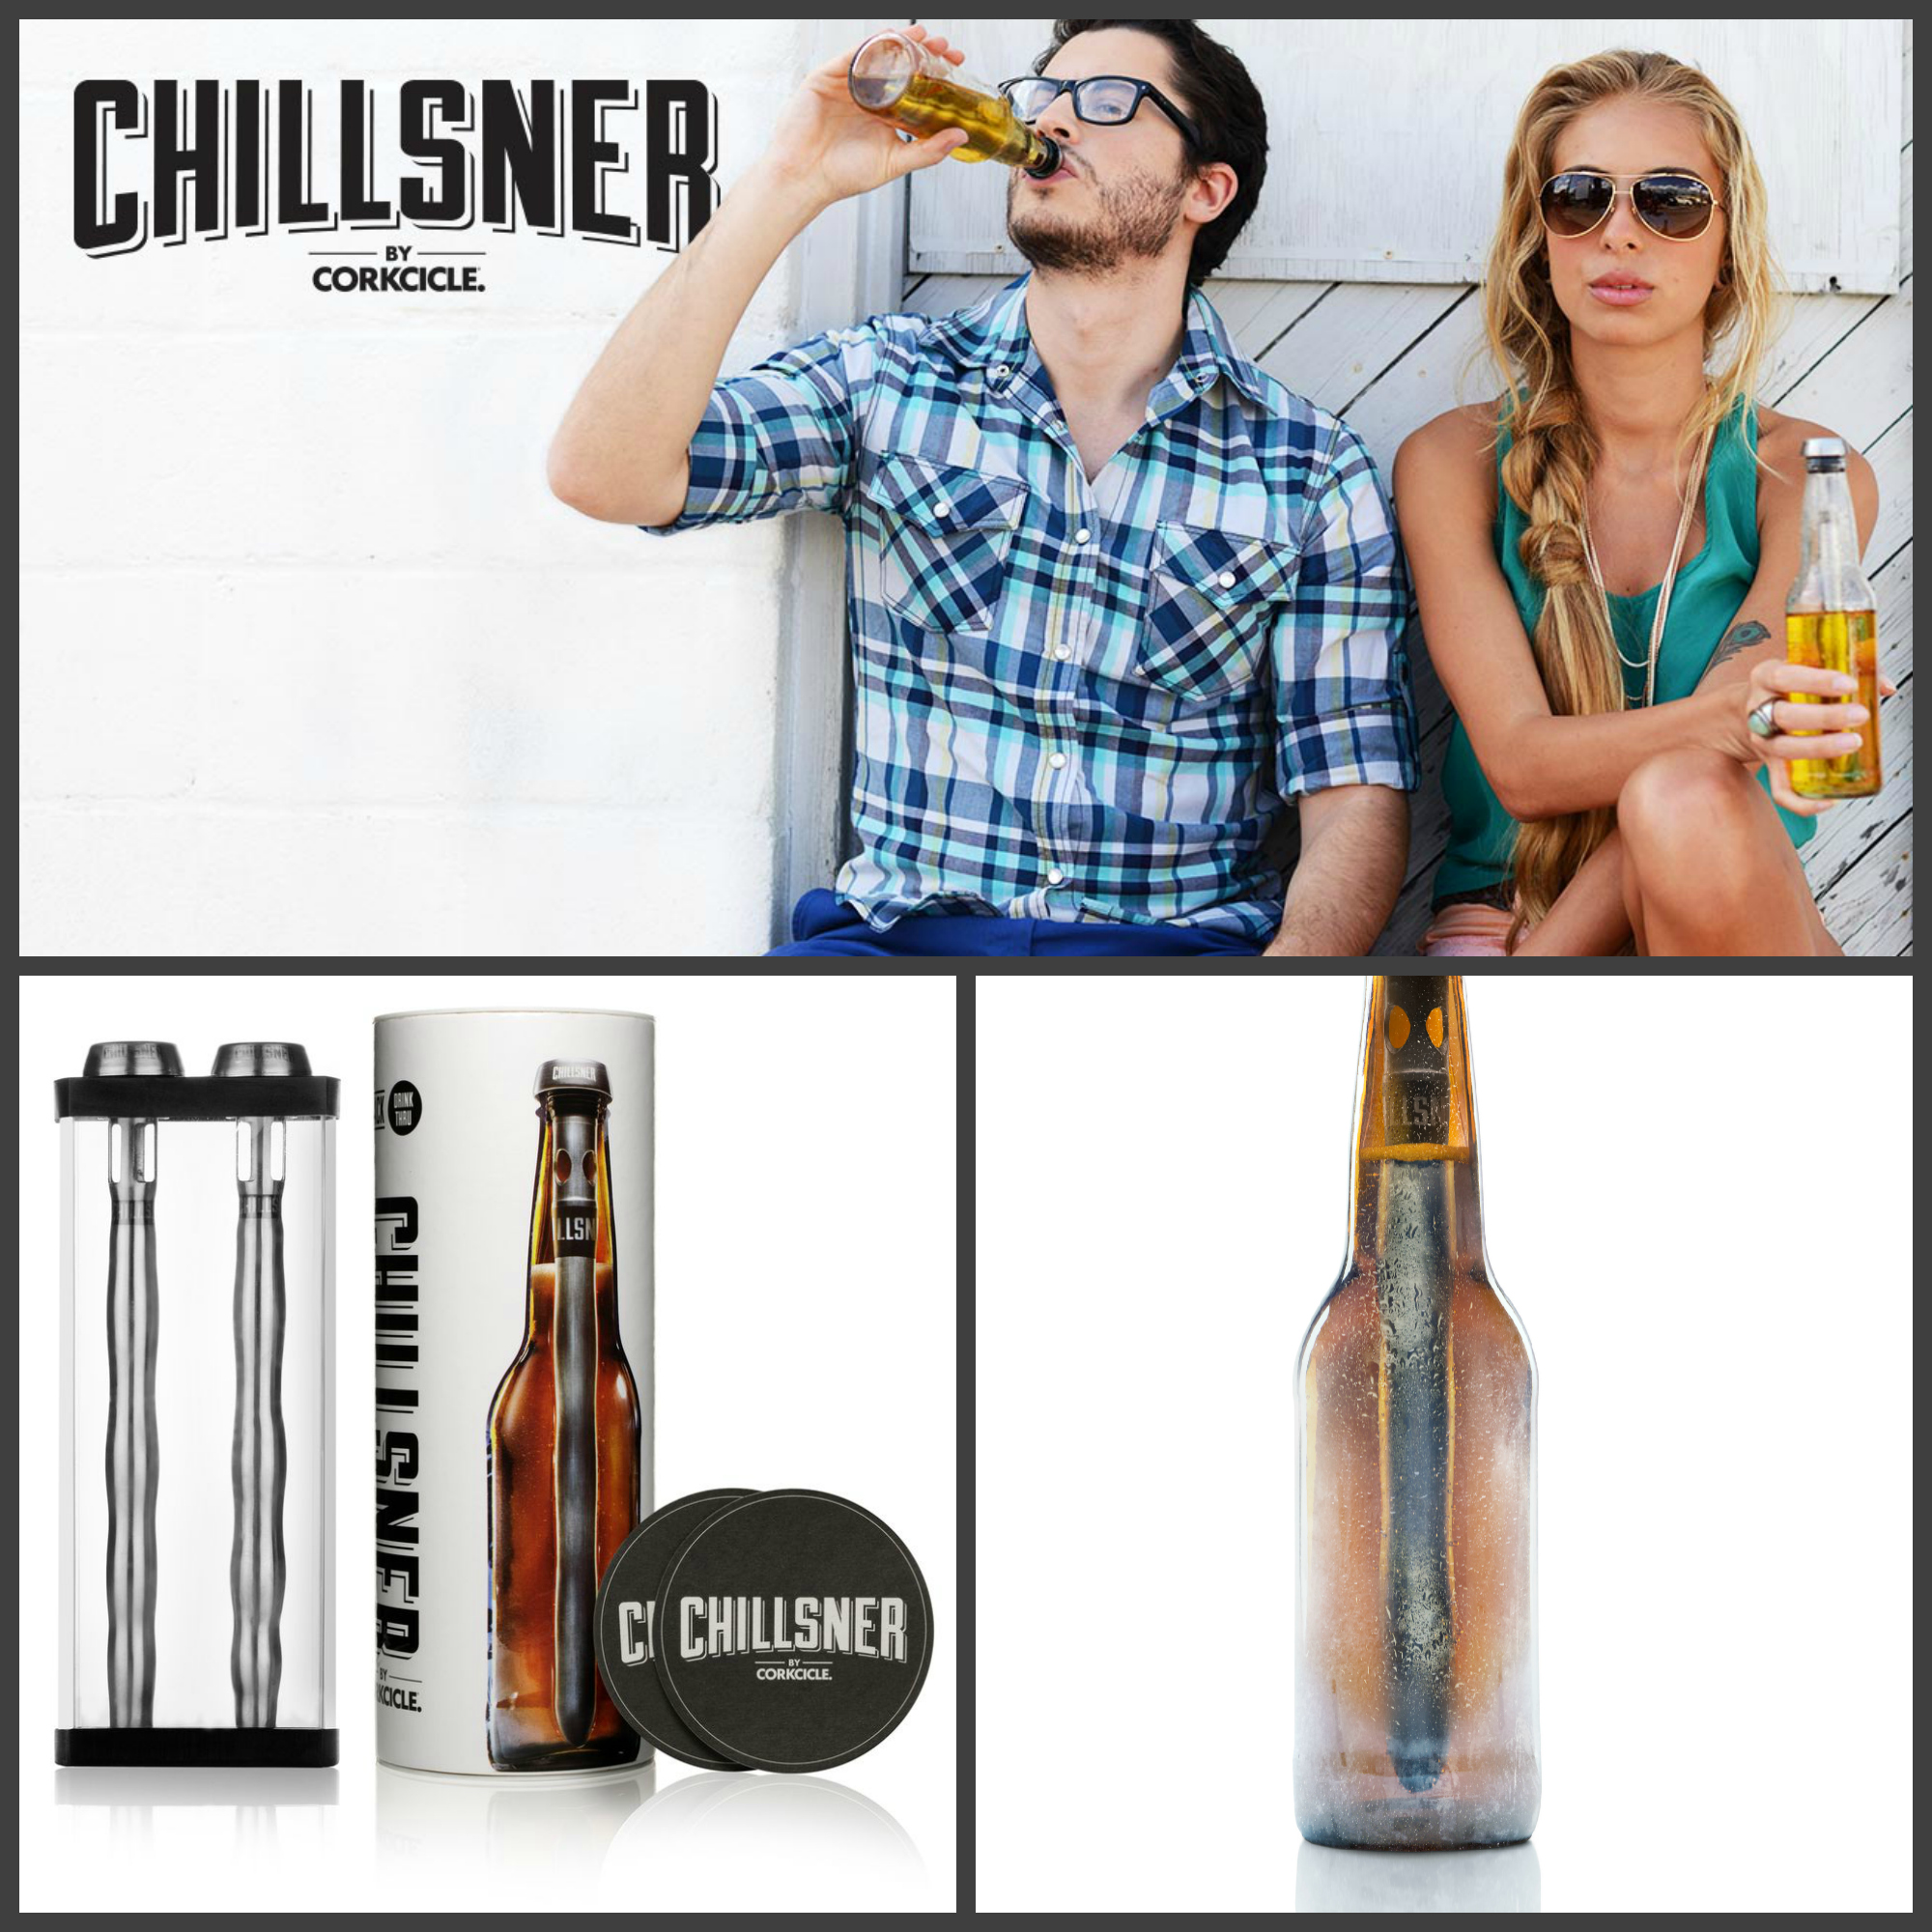 chillsner by corkcicle